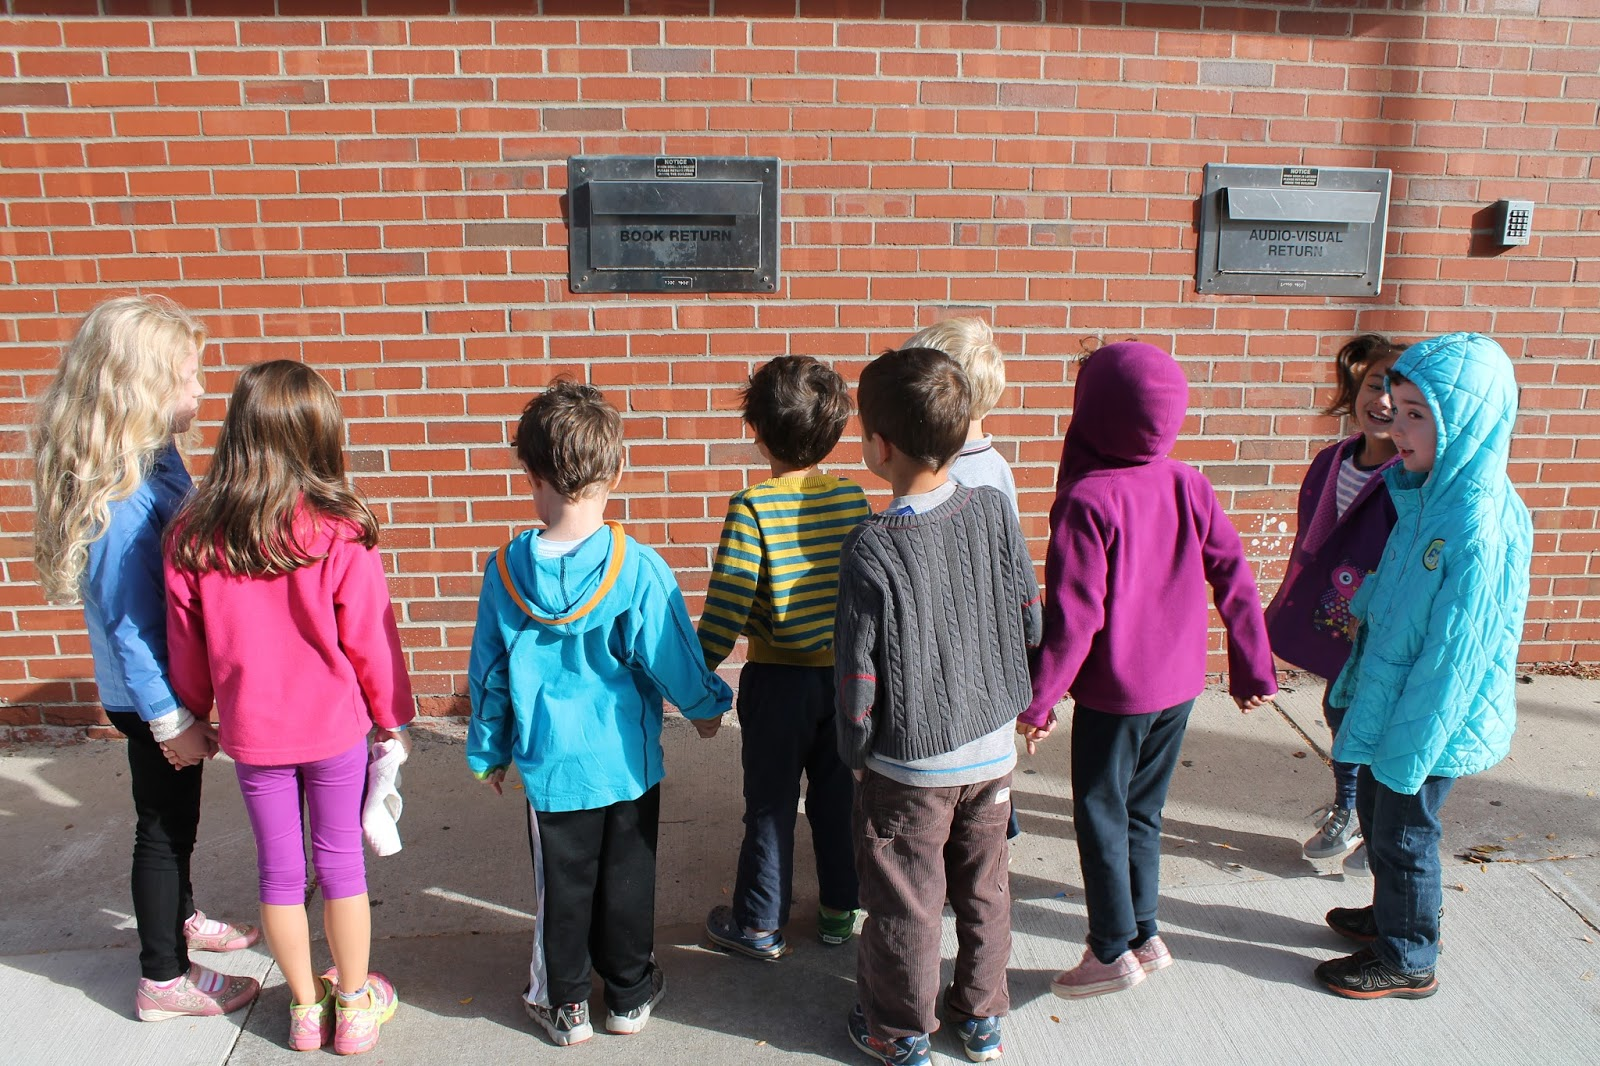 Upon Arrival Downtown Kindergartners Dismounted The School Bus Right In Sight Of Night Depository Box For Books And Media Our Own SK Librarian